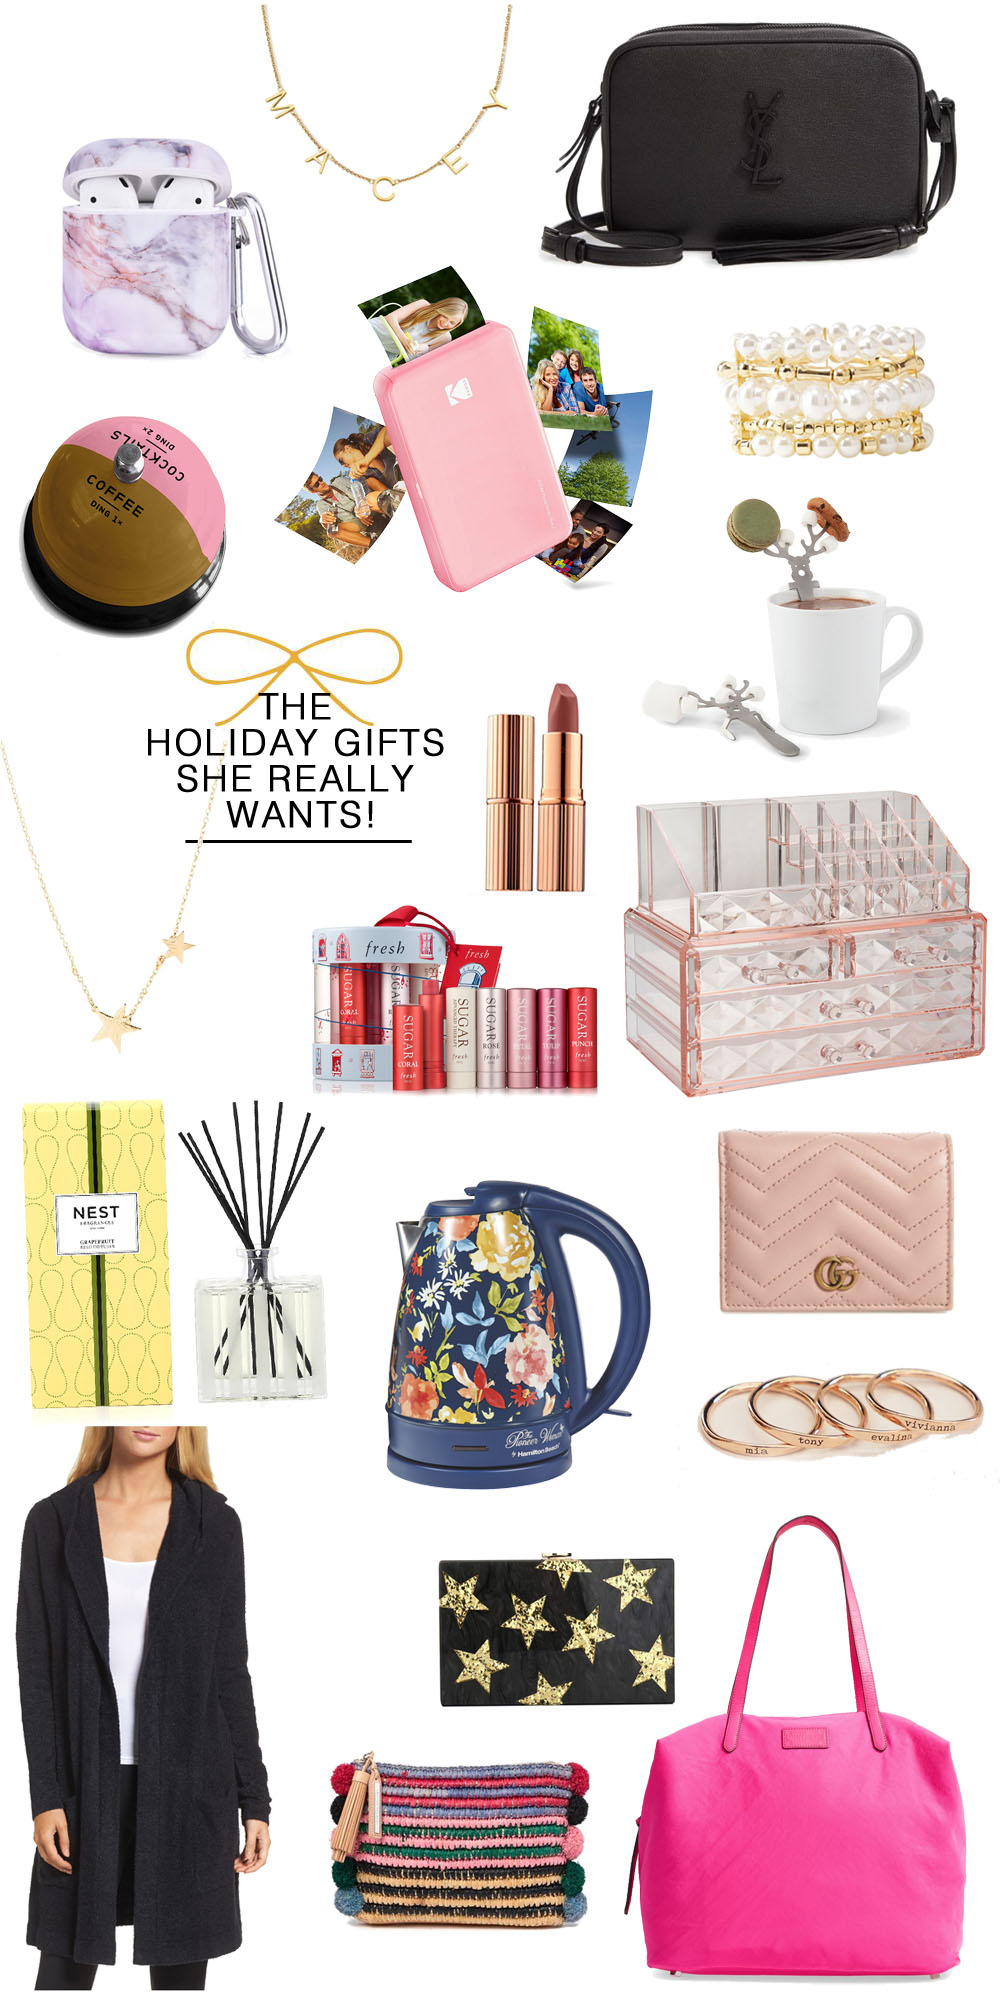 The 20+ Holiday Gifts for Her  this Season by popular Florida life and style blog, The Modern Savvy: collage image of Marble iPods case, name necklace, YSL purse, Coffee time bell, instant photo printer, Lilly Pulitzer pearl bracelet, reindeer dessert stirrers, Gorjana star necklace, Fresh lip set, Charlotte Tillbury lipstick, Pioneer Woman kettle, Gucci wallet and card case, engraved name rings, Barefoot Dreams cardigan, Loeffler Randall purse, Star clutch, Rebecca Minkoff nylon tote.